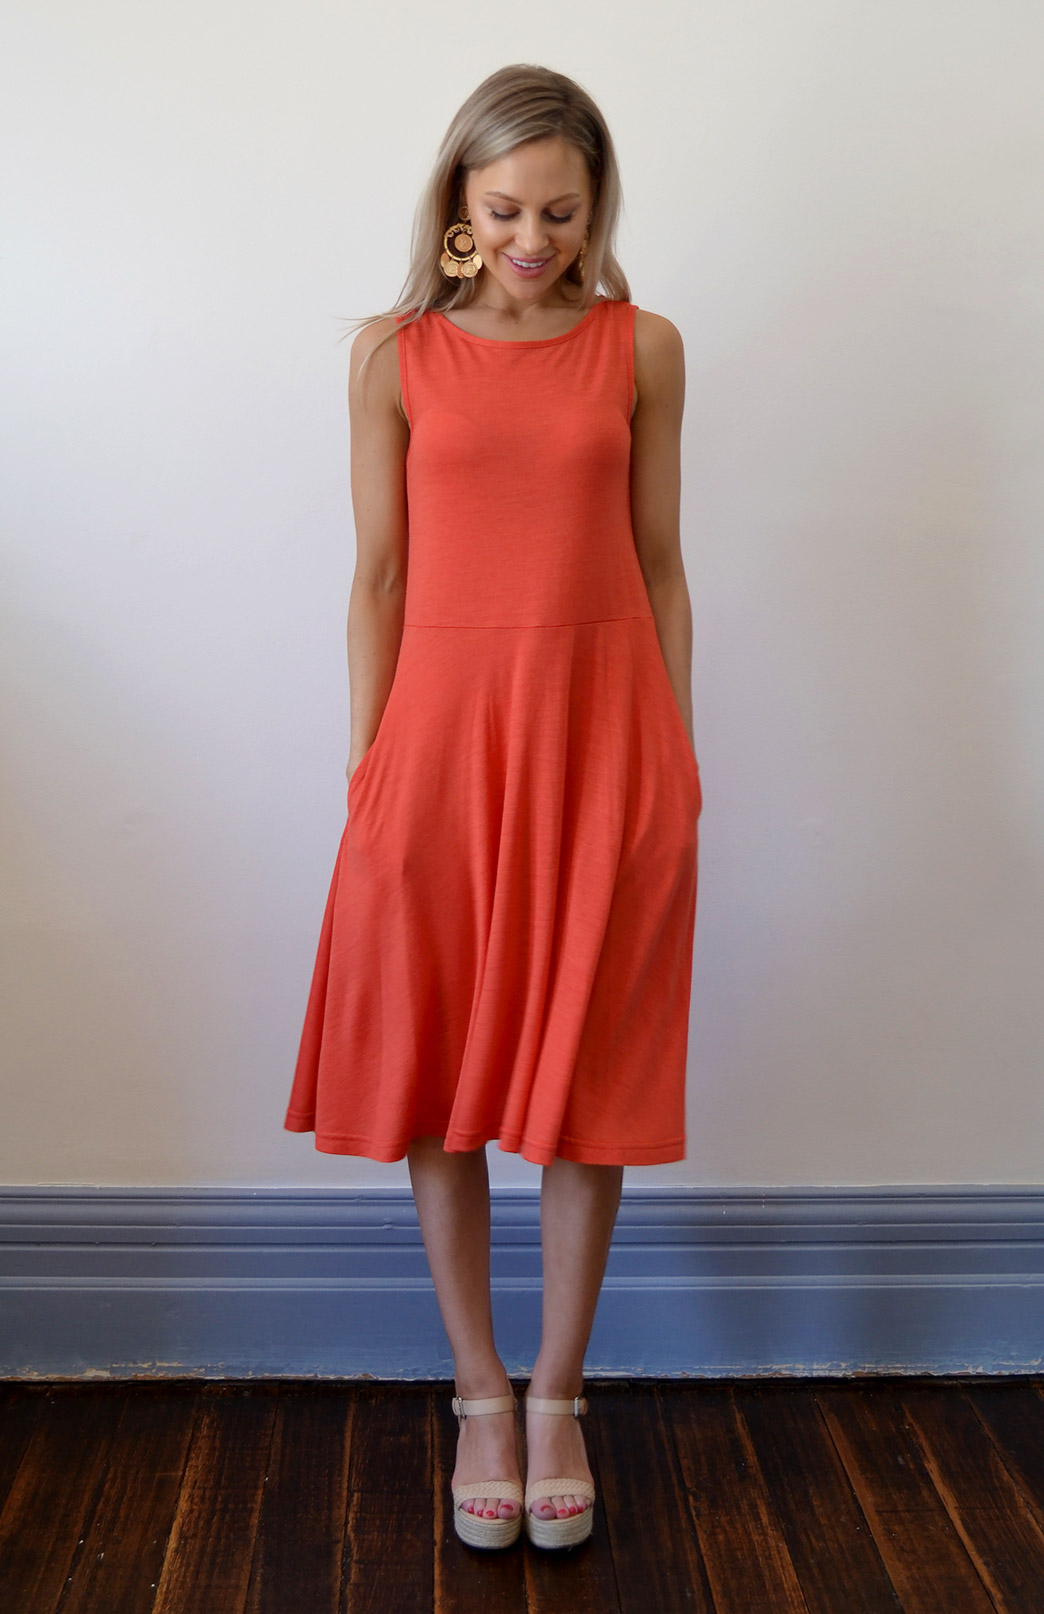 MaryAnn Fit and Flare Dress (SECONDS) - Women's Merino Wool Sleeveless Mary Dress with Pockets - Smitten Merino Tasmania Australia